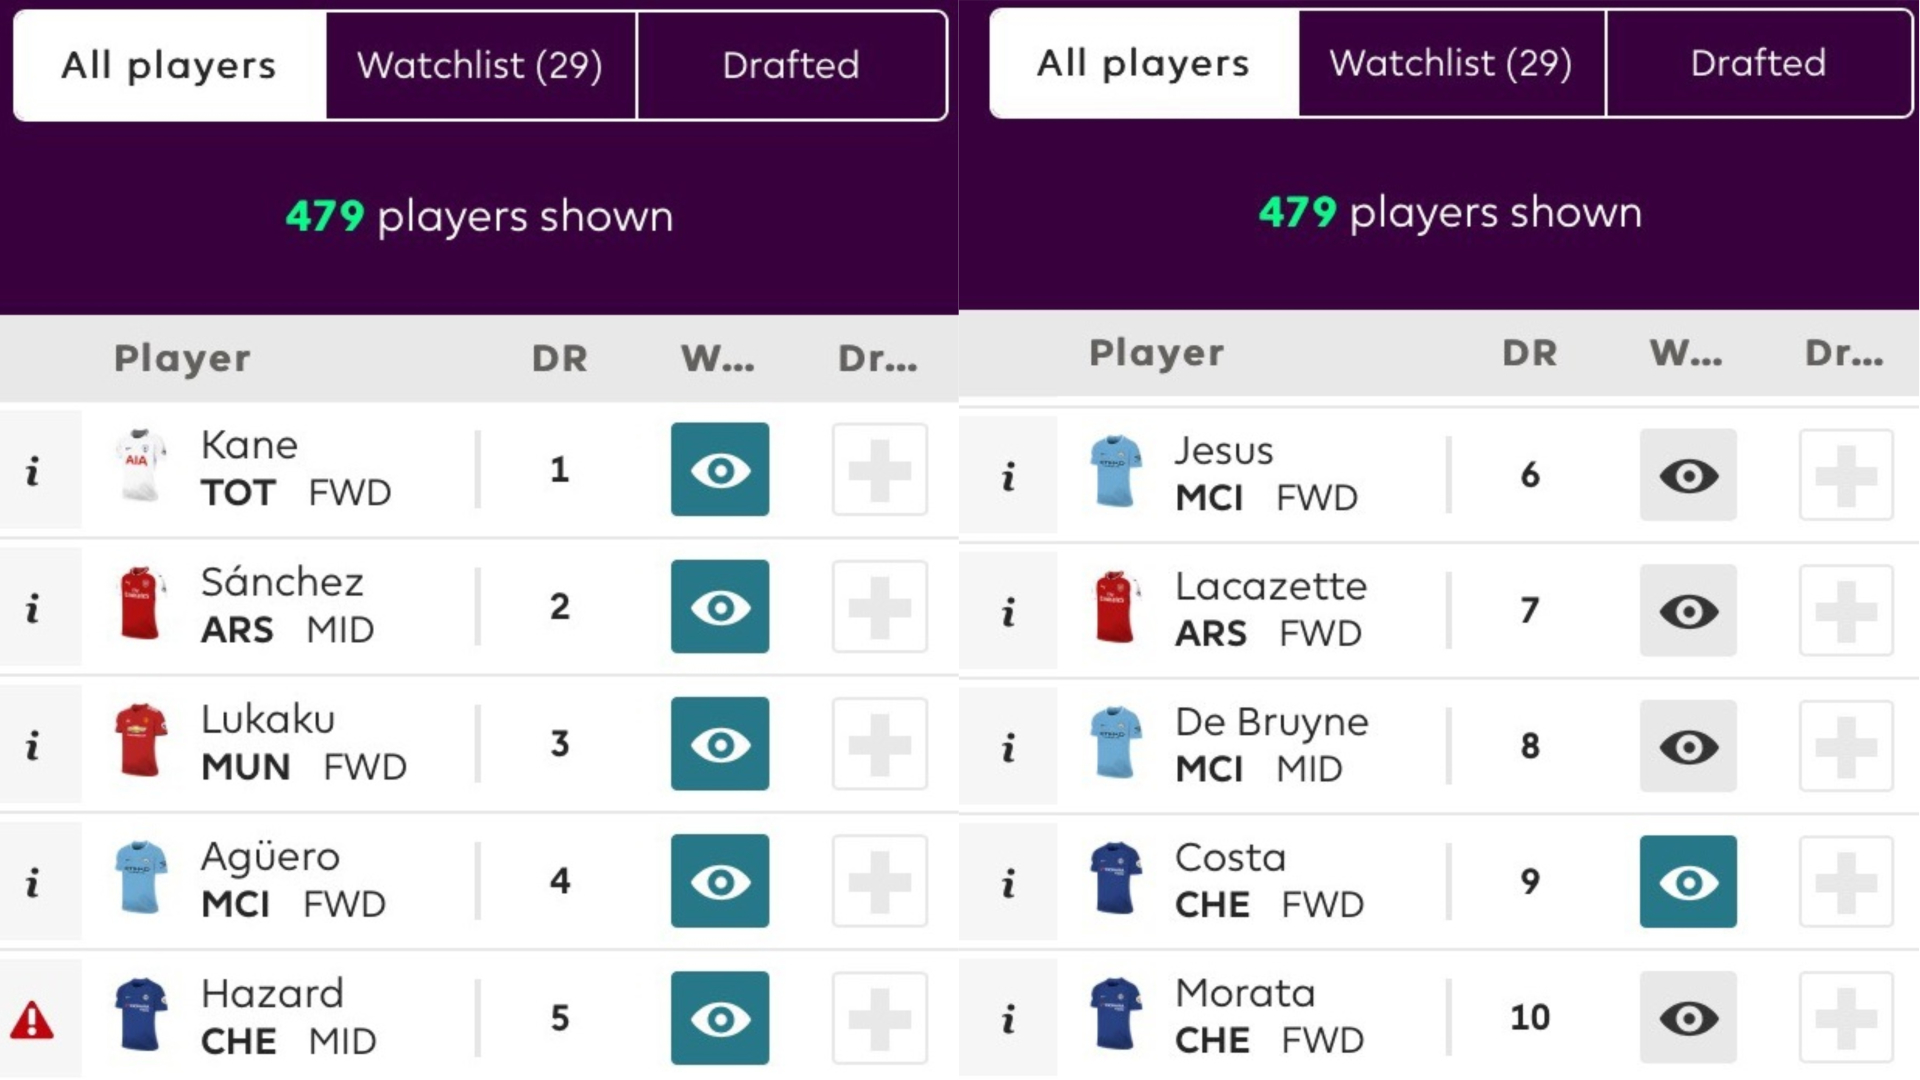 The top ranked Premier League footballers in the FPL draft game